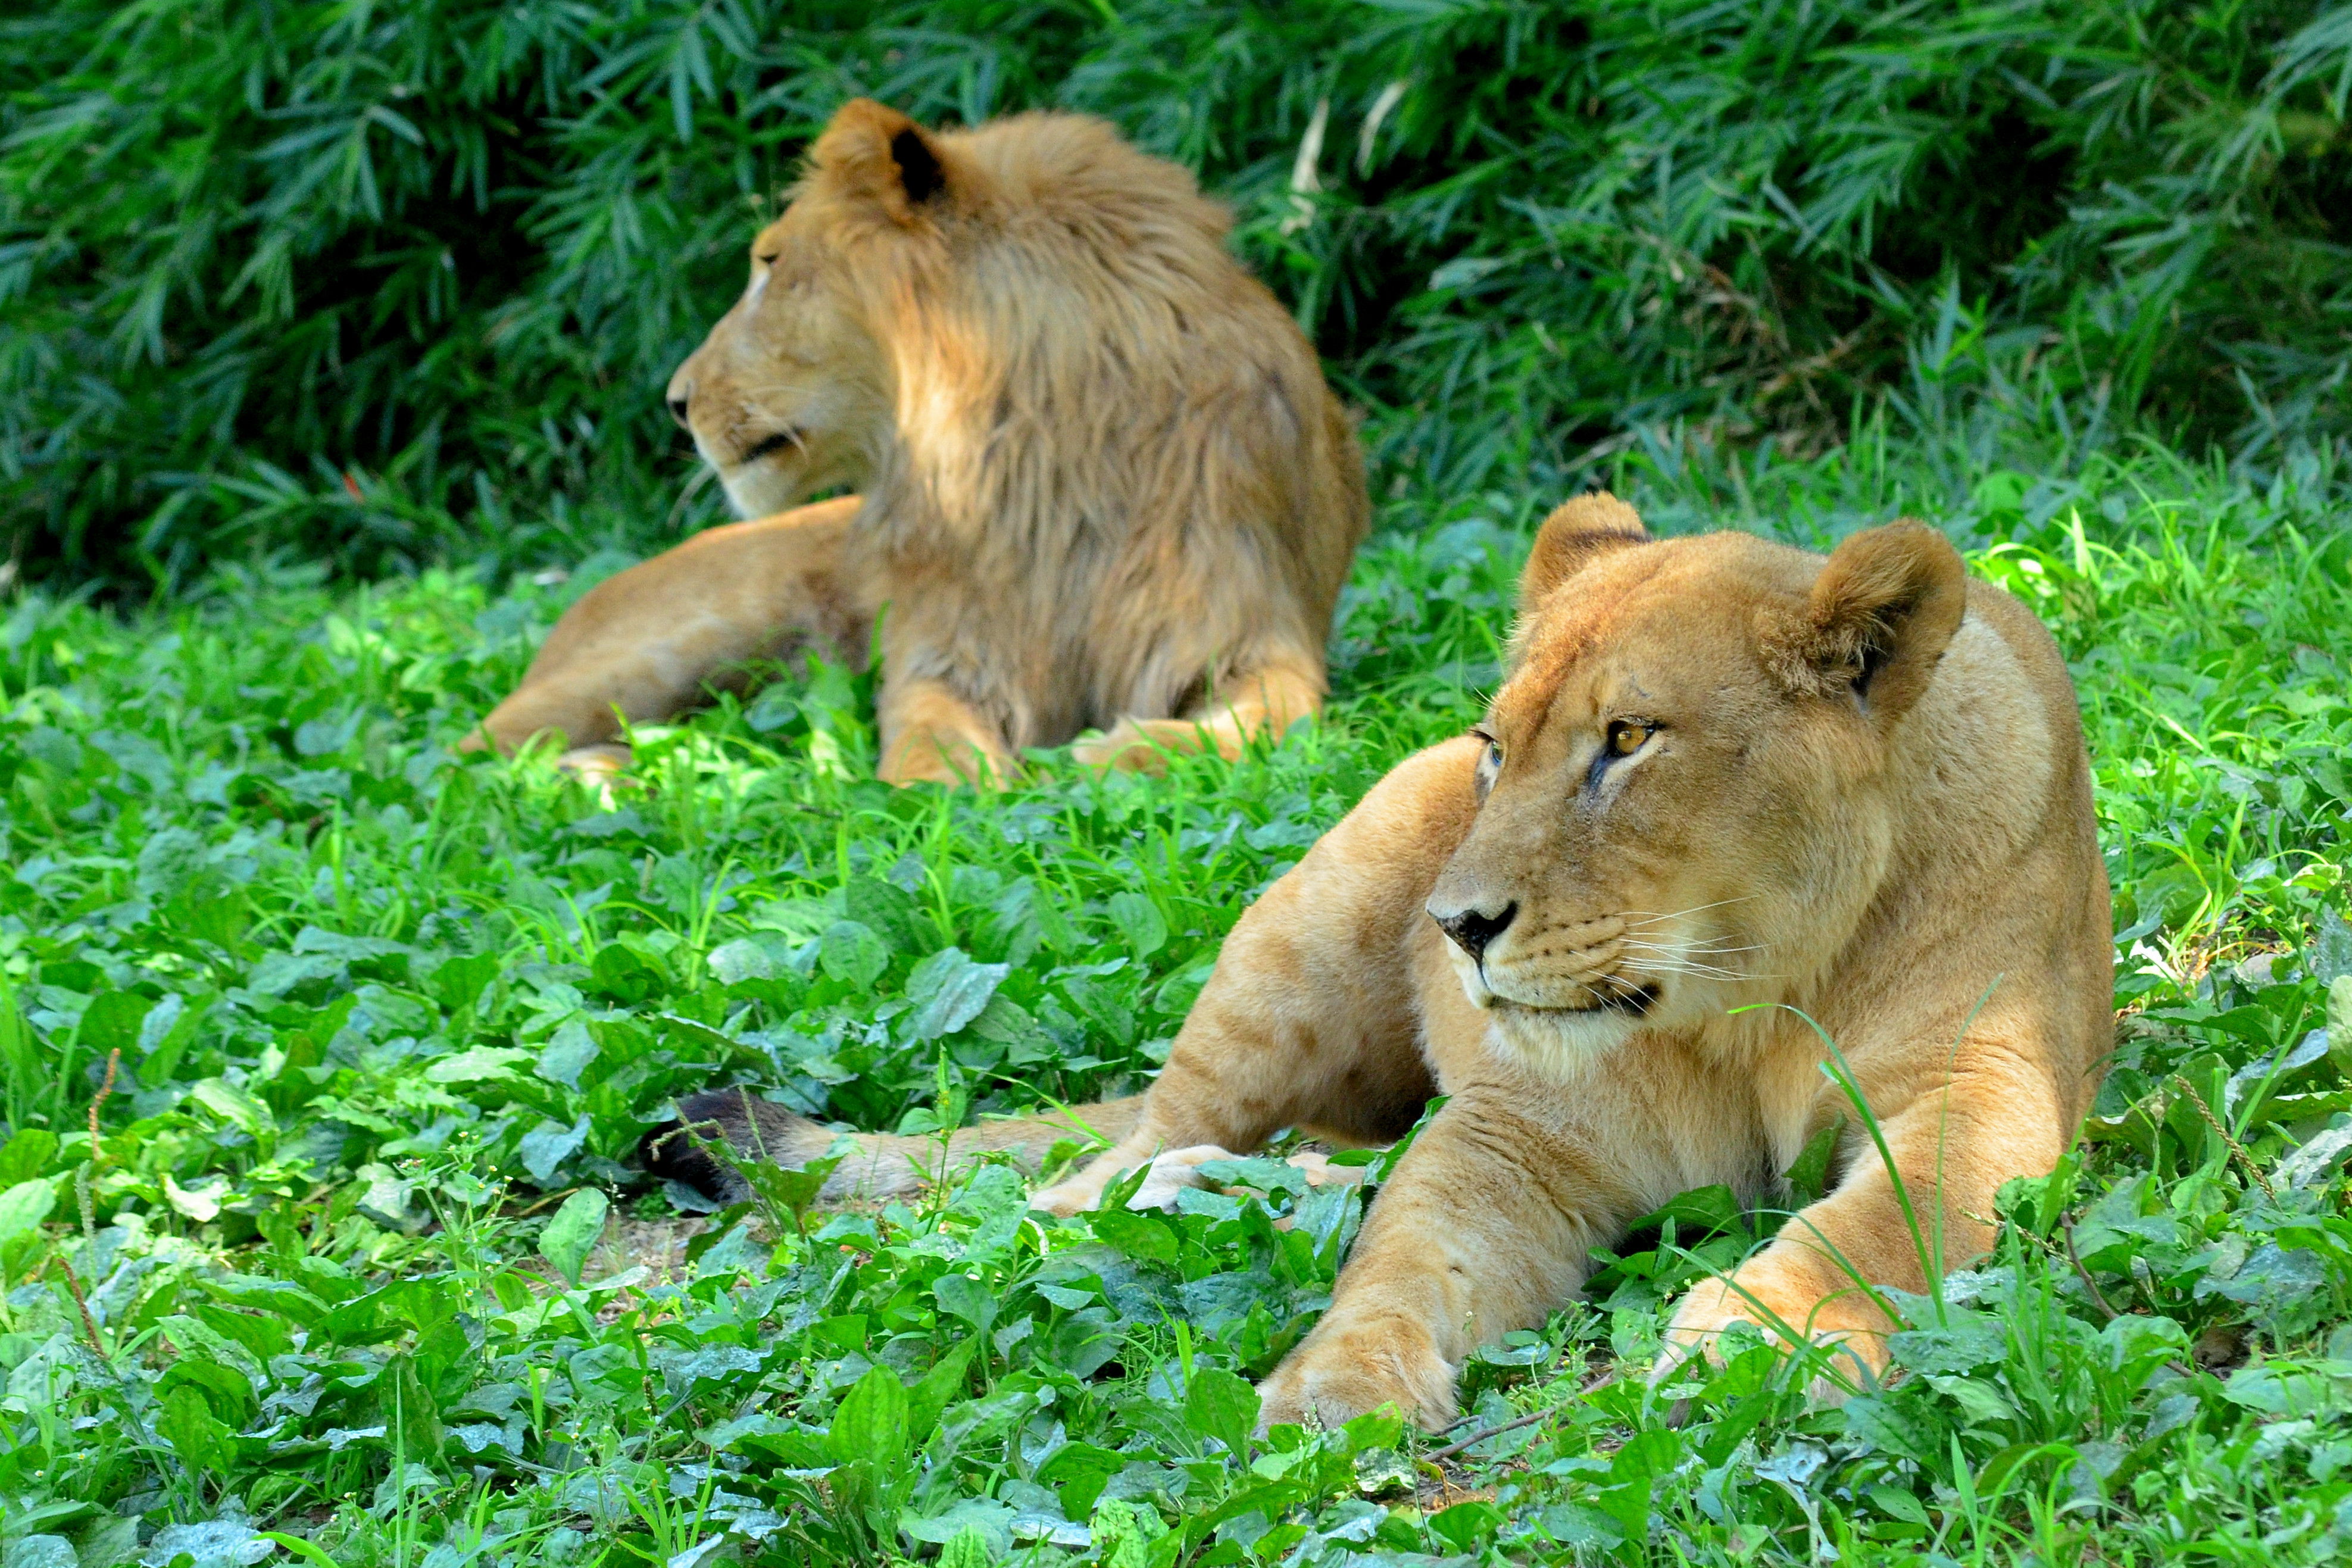 132839 download wallpaper Animals, Lioness, Predator, Grass, Paws screensavers and pictures for free